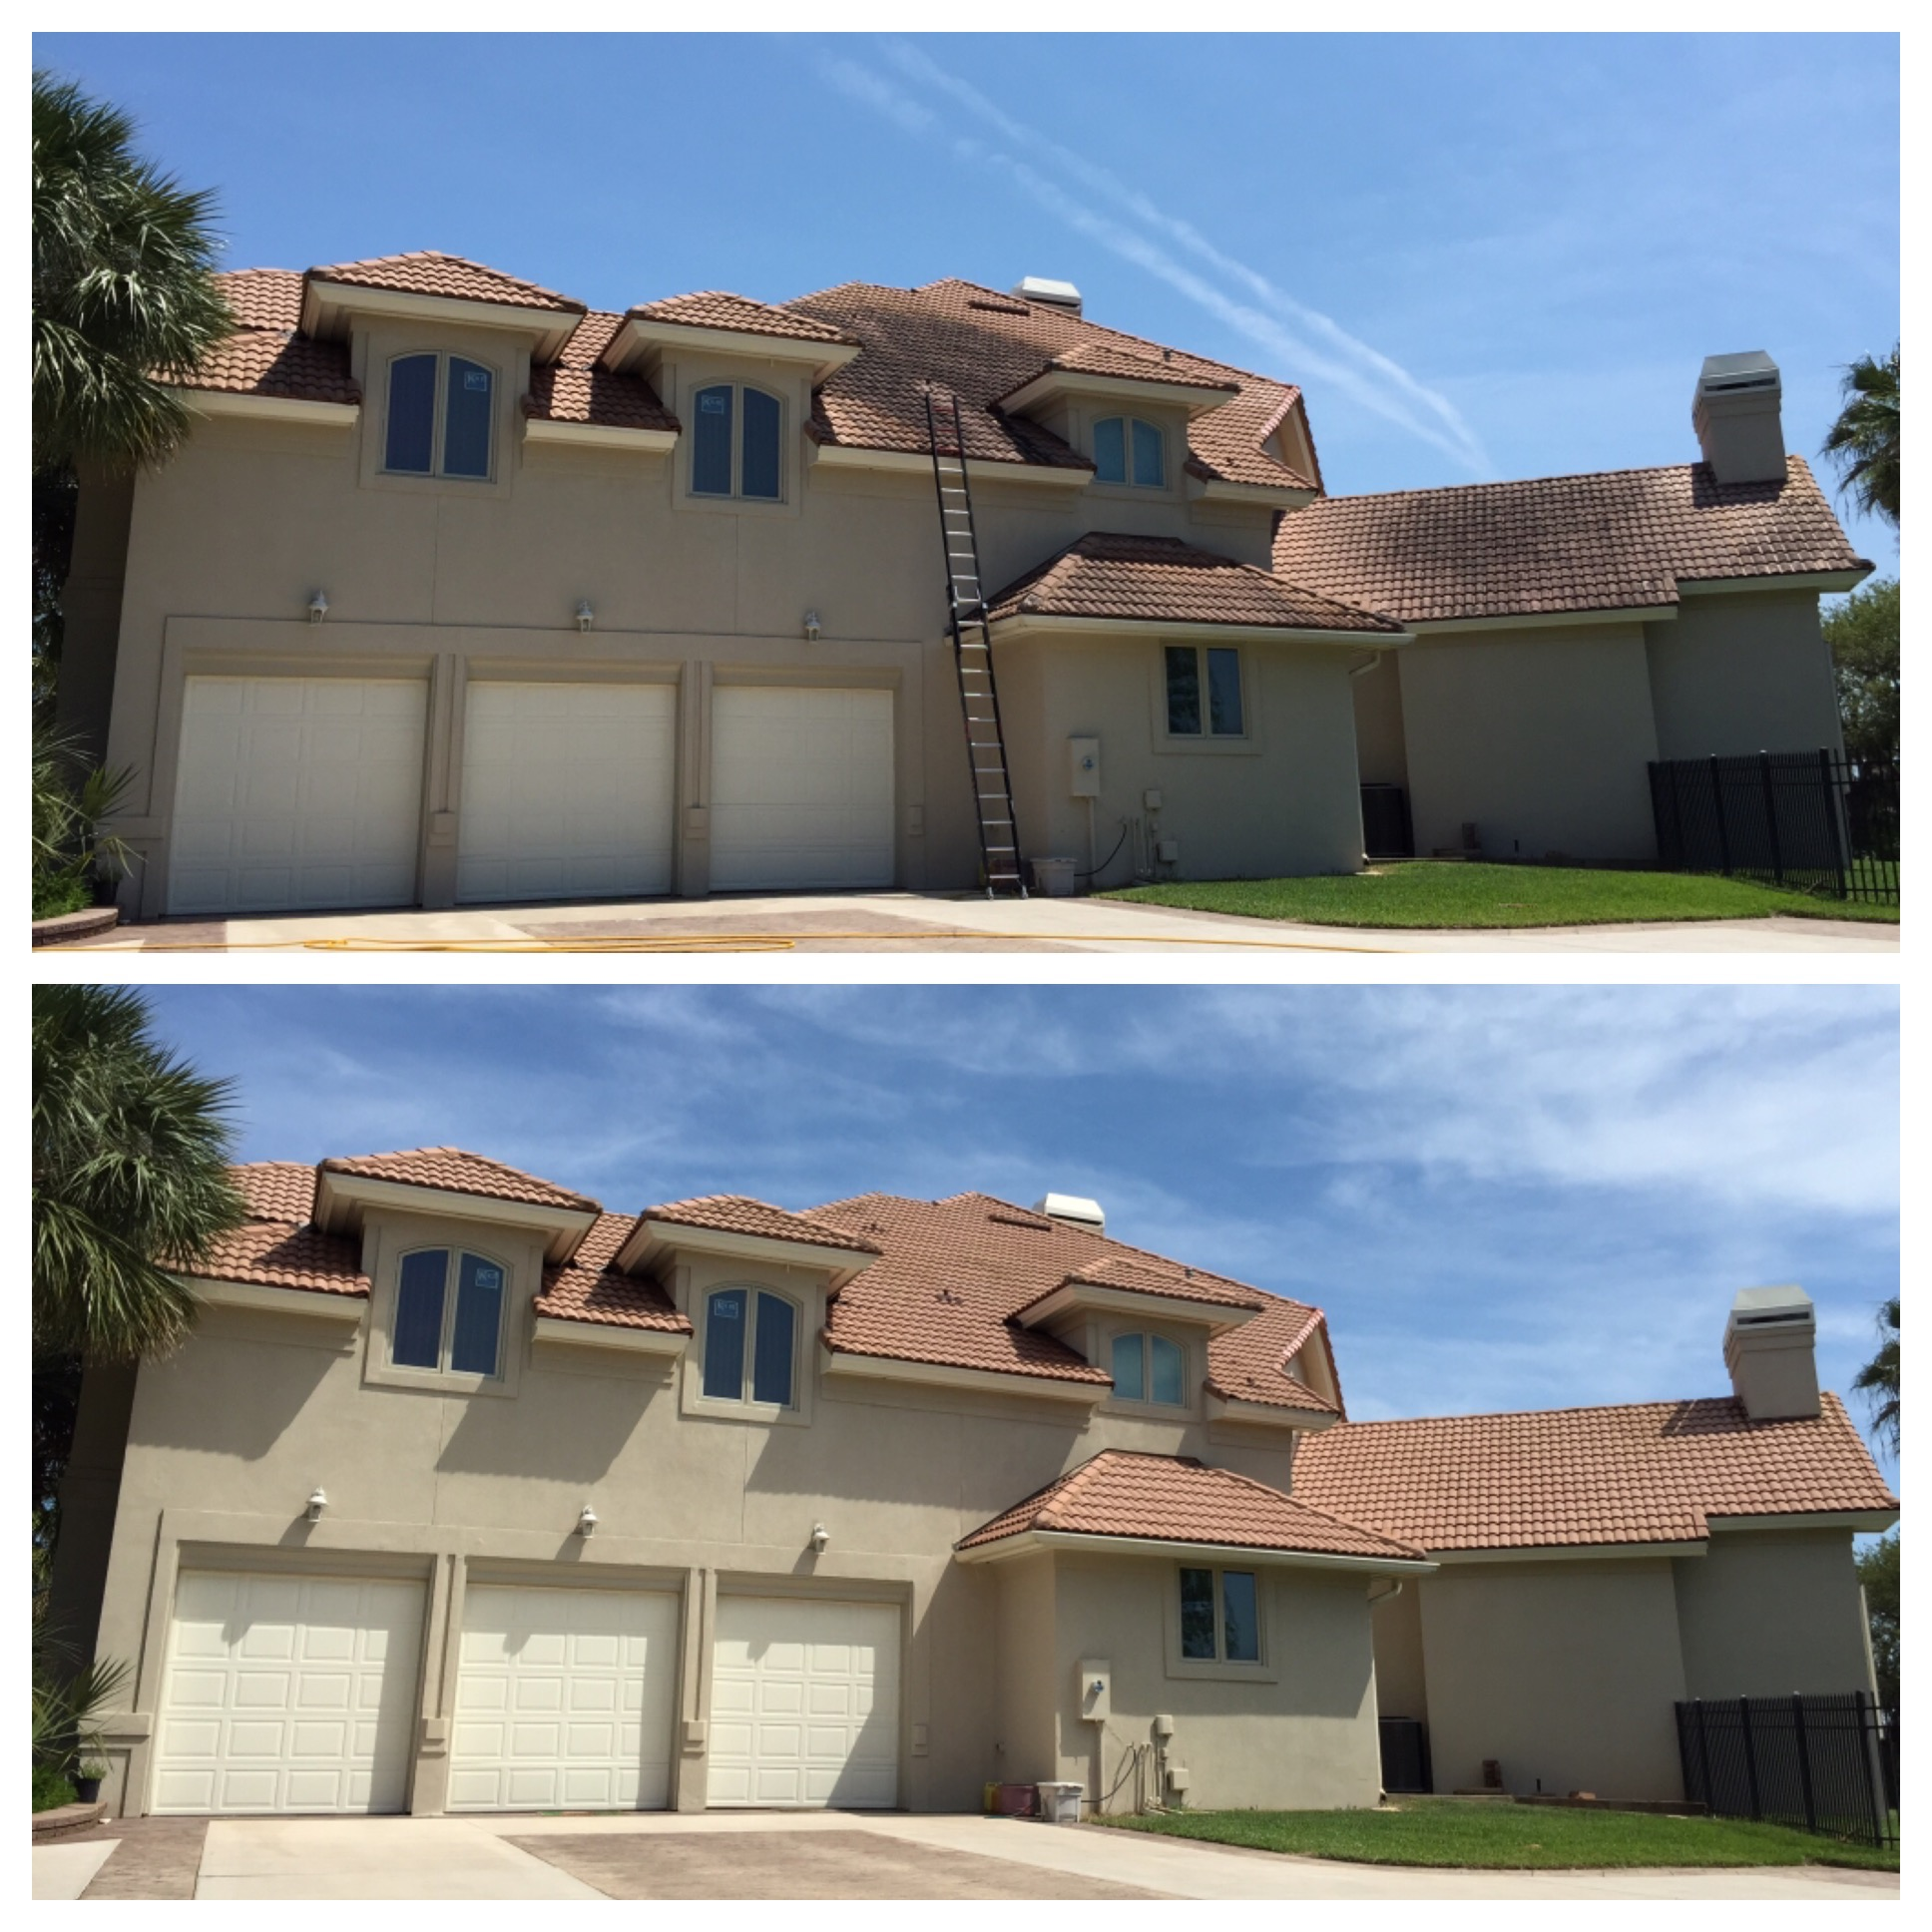 Roof Cleaning Jacksonville Fl The Pressure Kru Inc